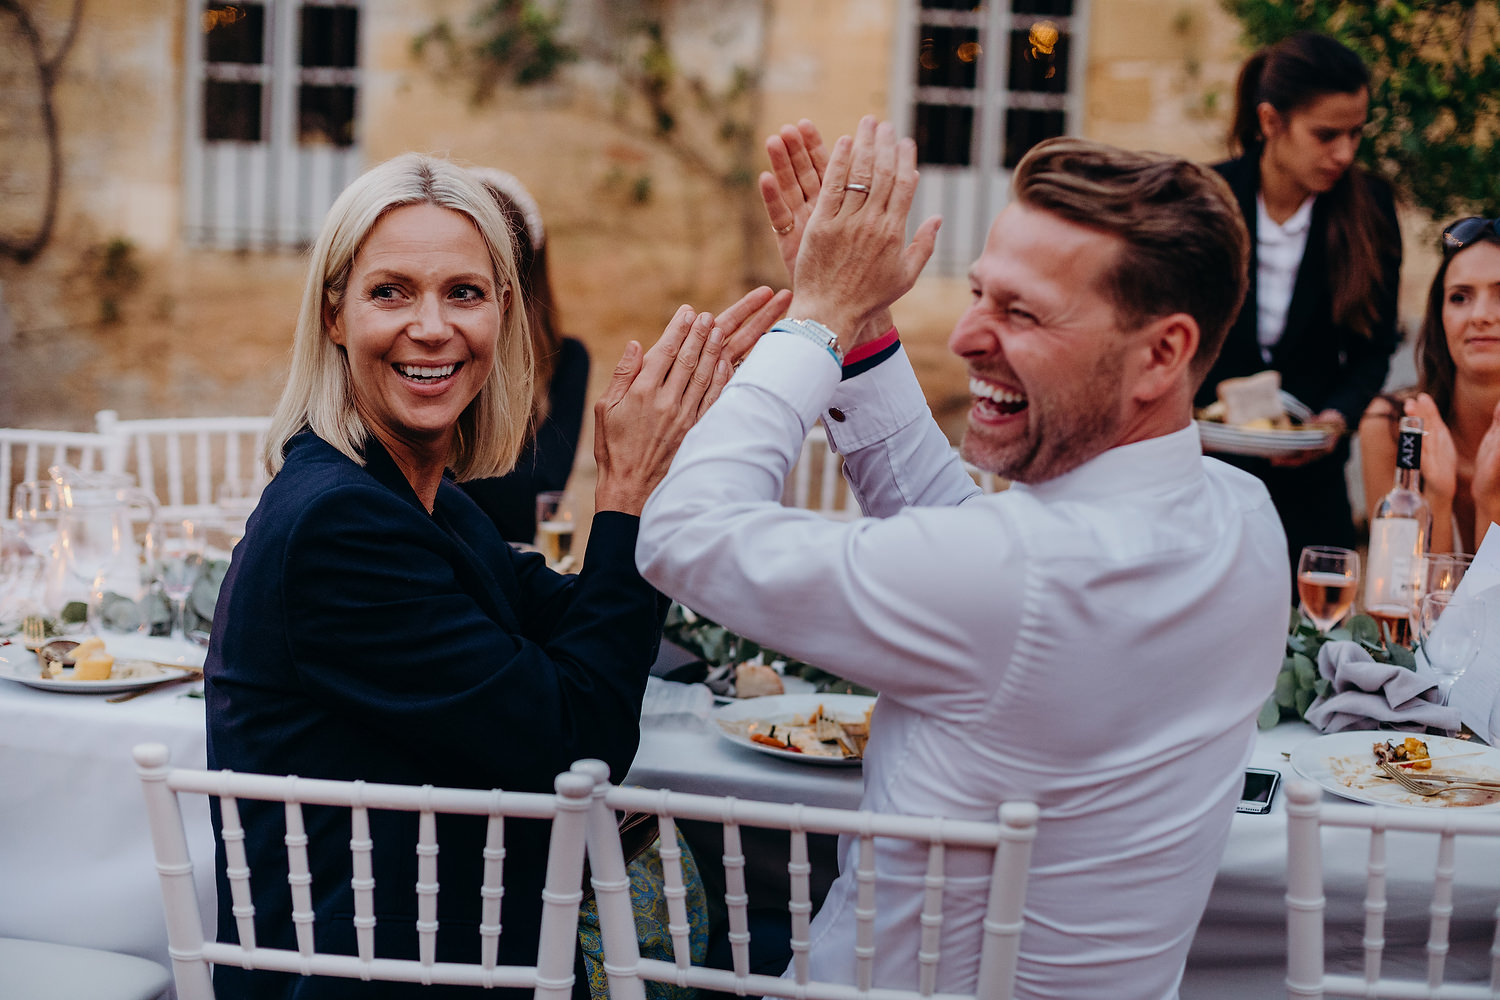 guests clapping during reception